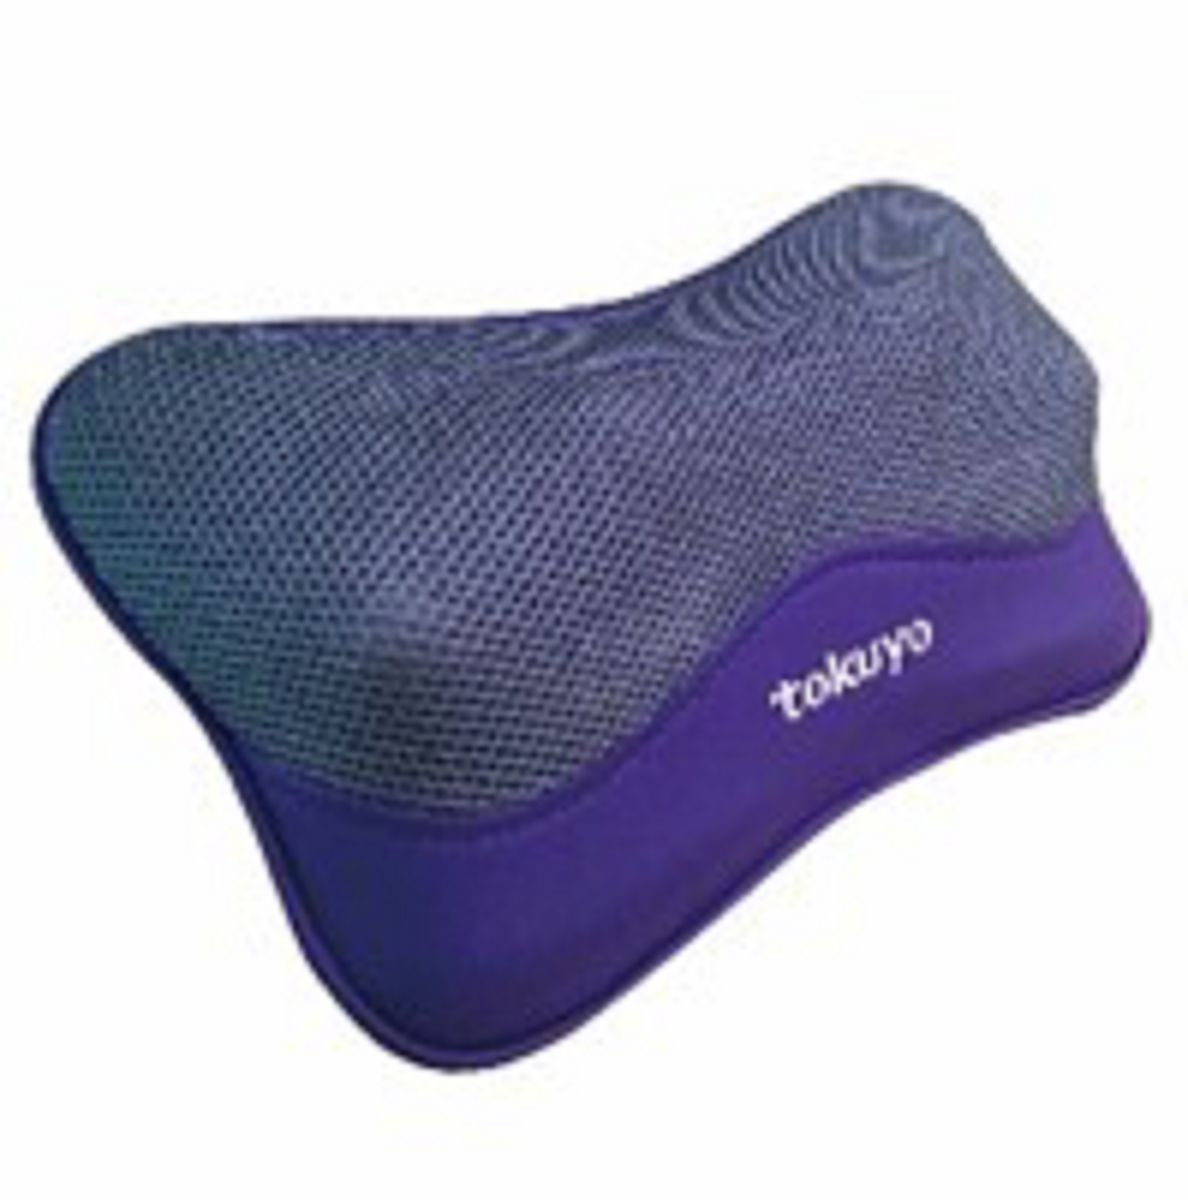 Massage Pillow / Tokuyo Biotech Co., Ltd.